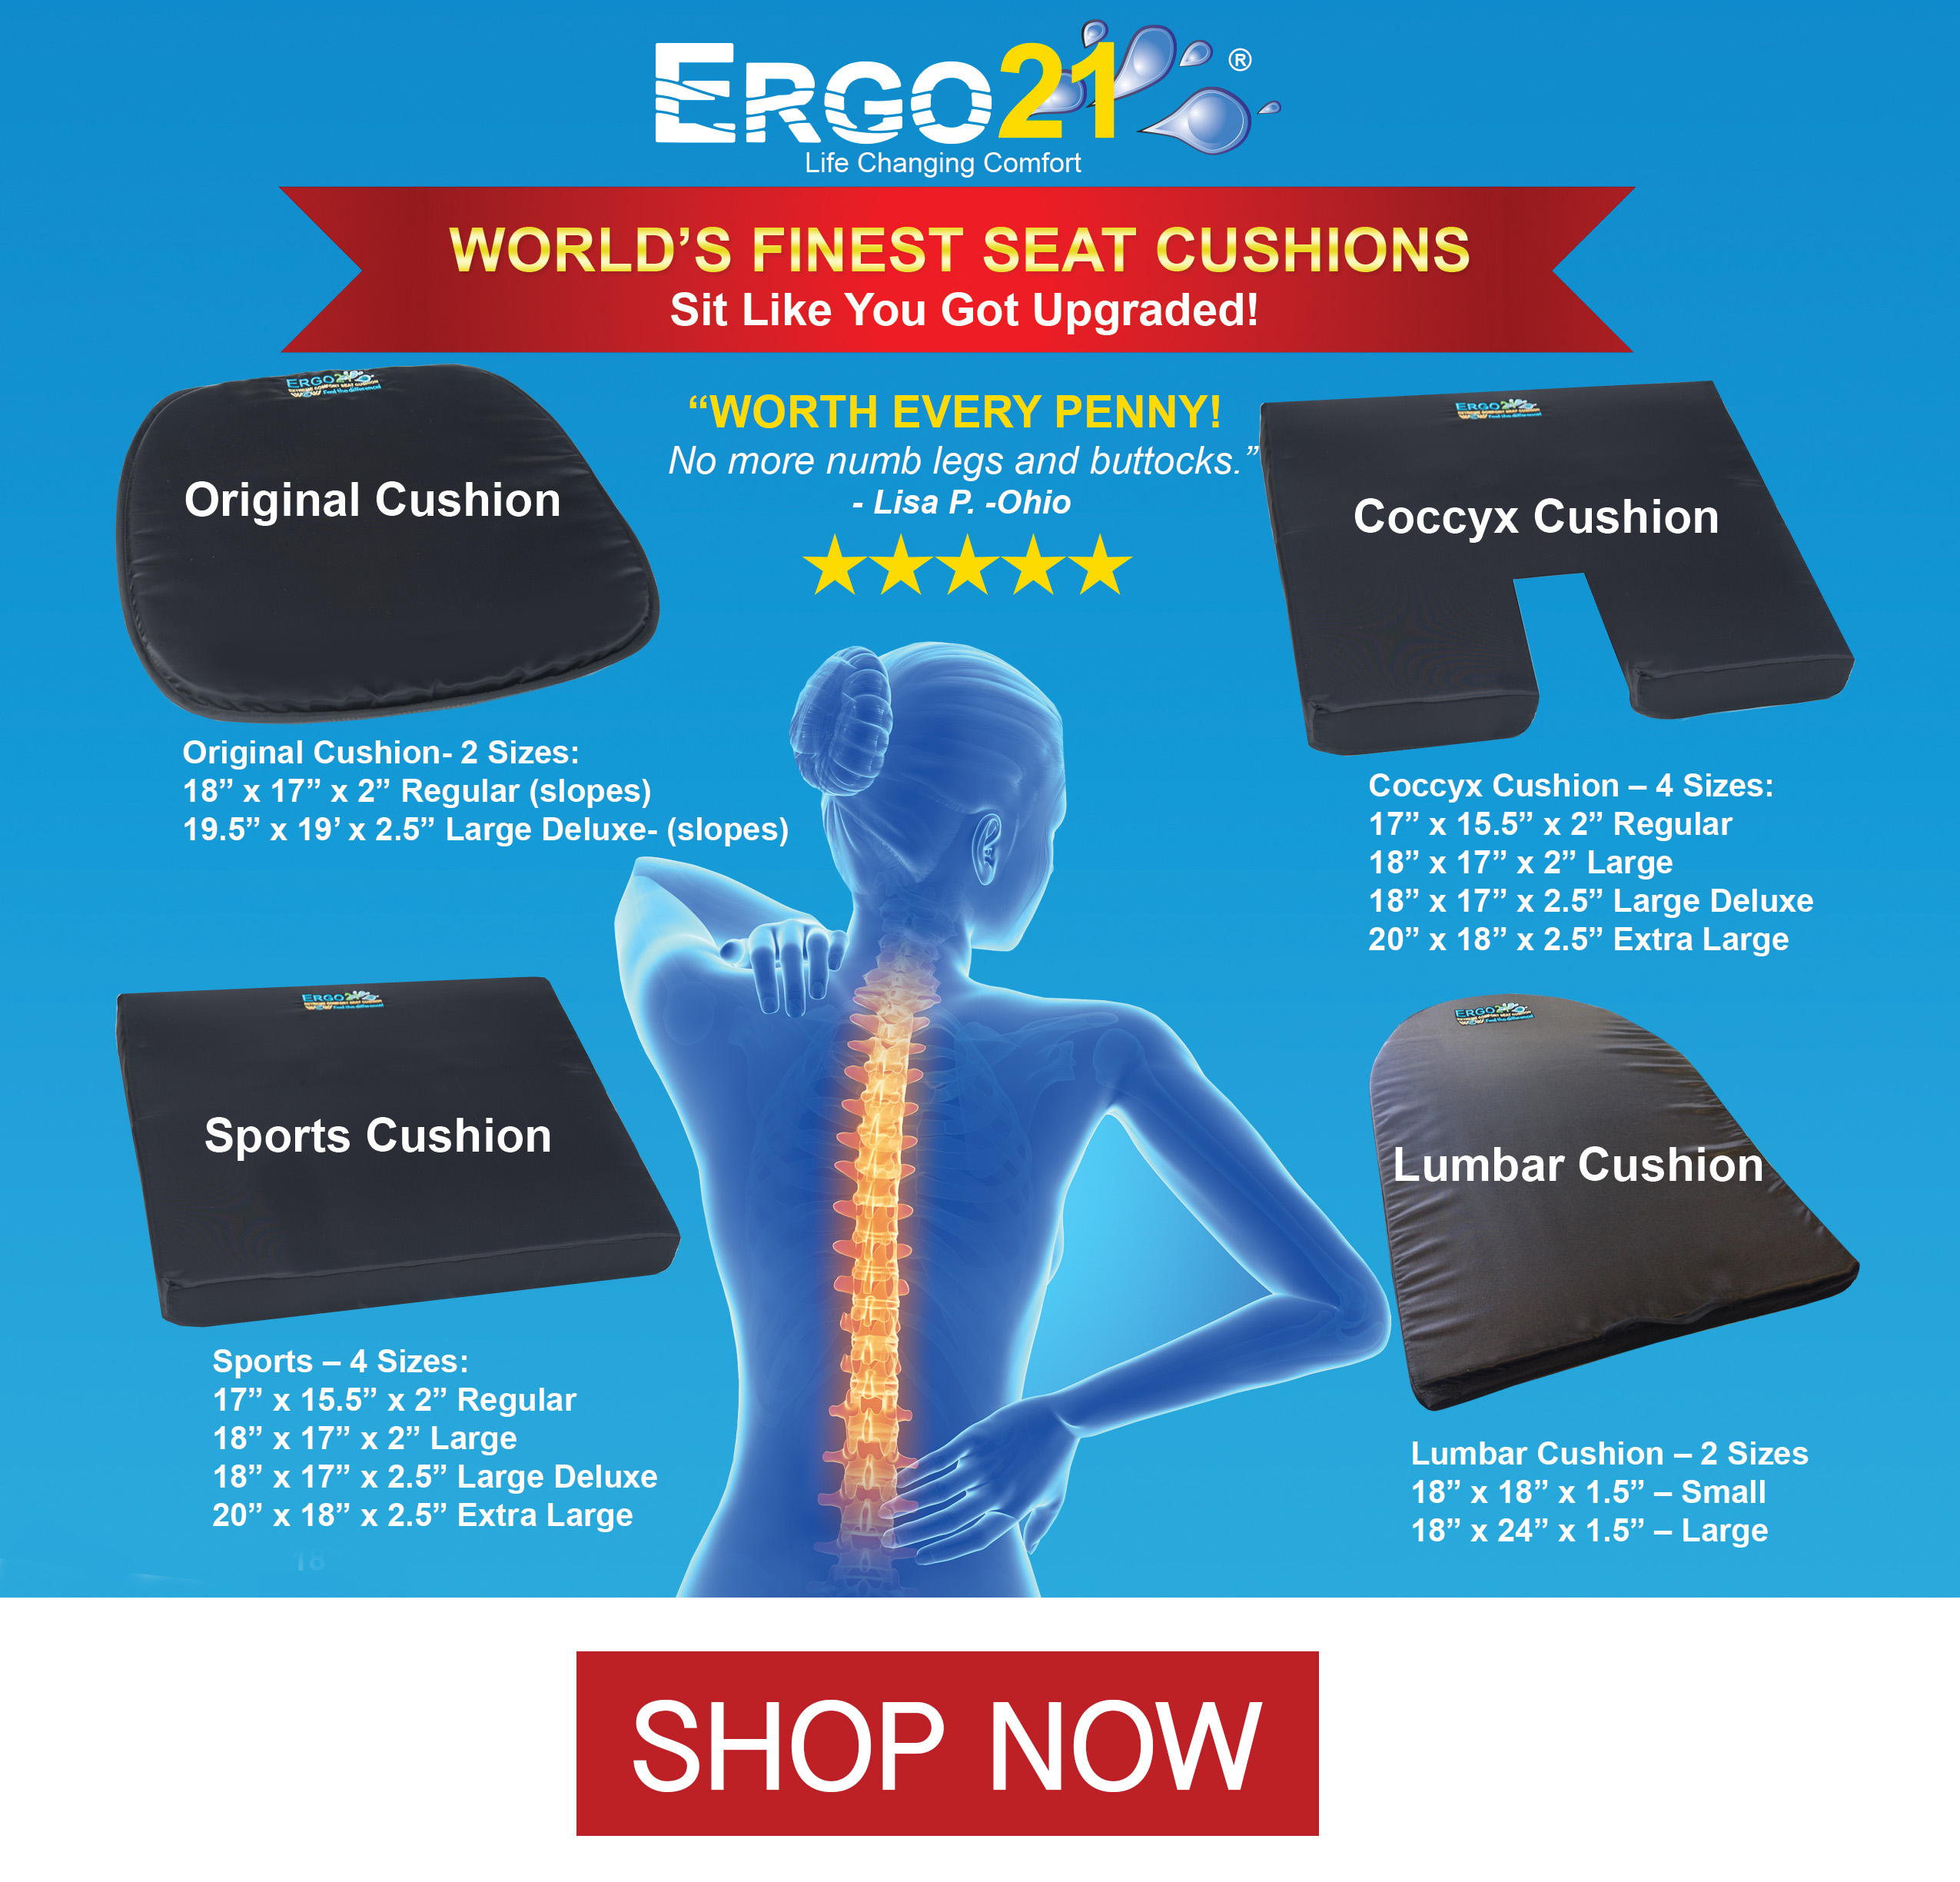 ergo21 seat cushion for pain relief better than gel or foam